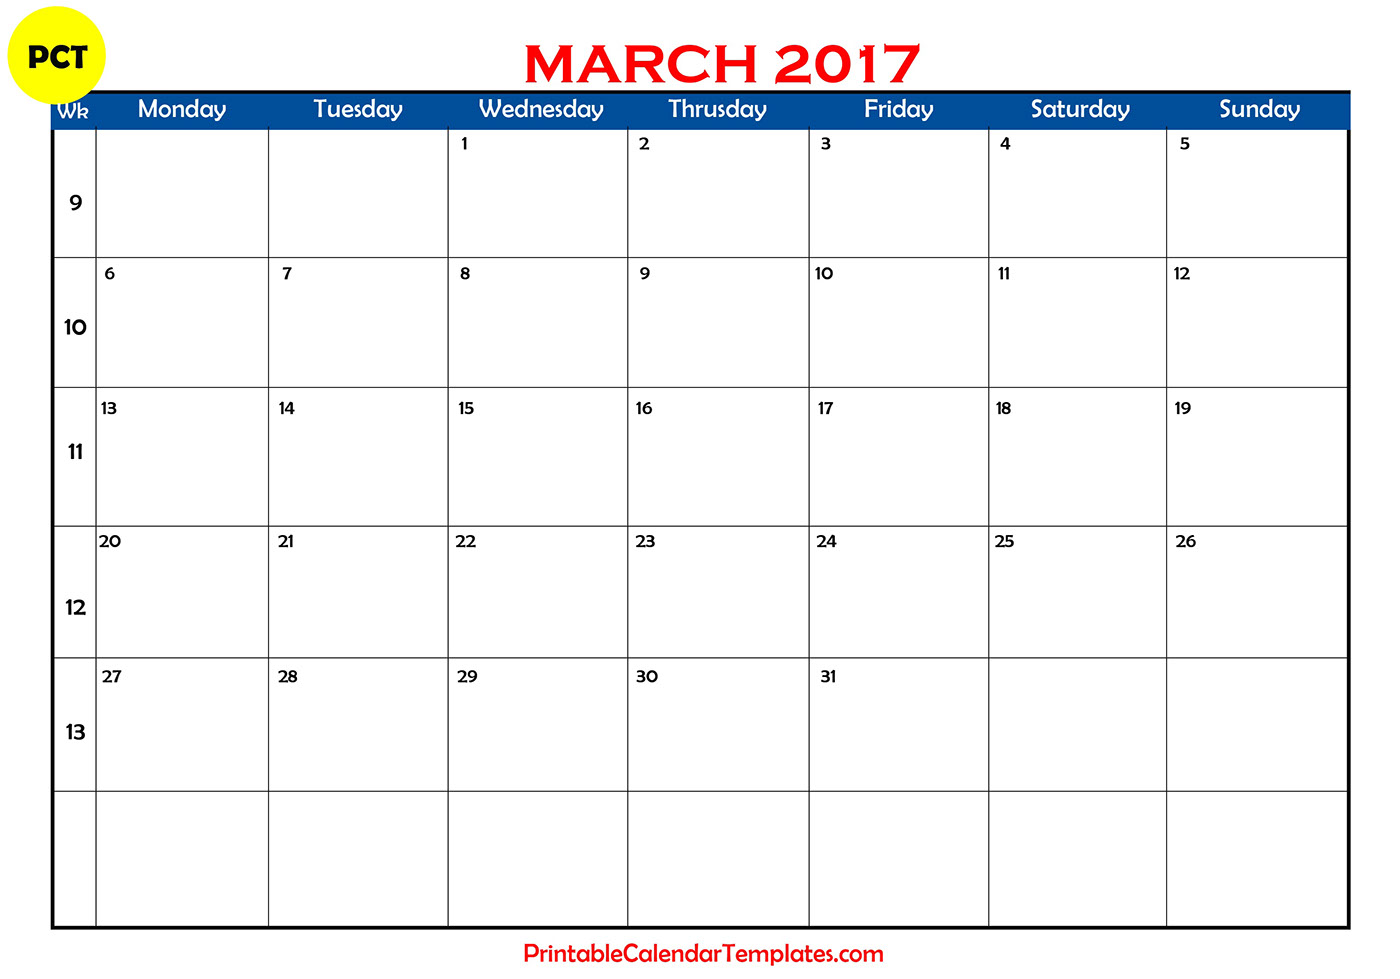 march 2017 calendar march calendar 2017 calendar march 2017 printable march 2017 march 2017 template